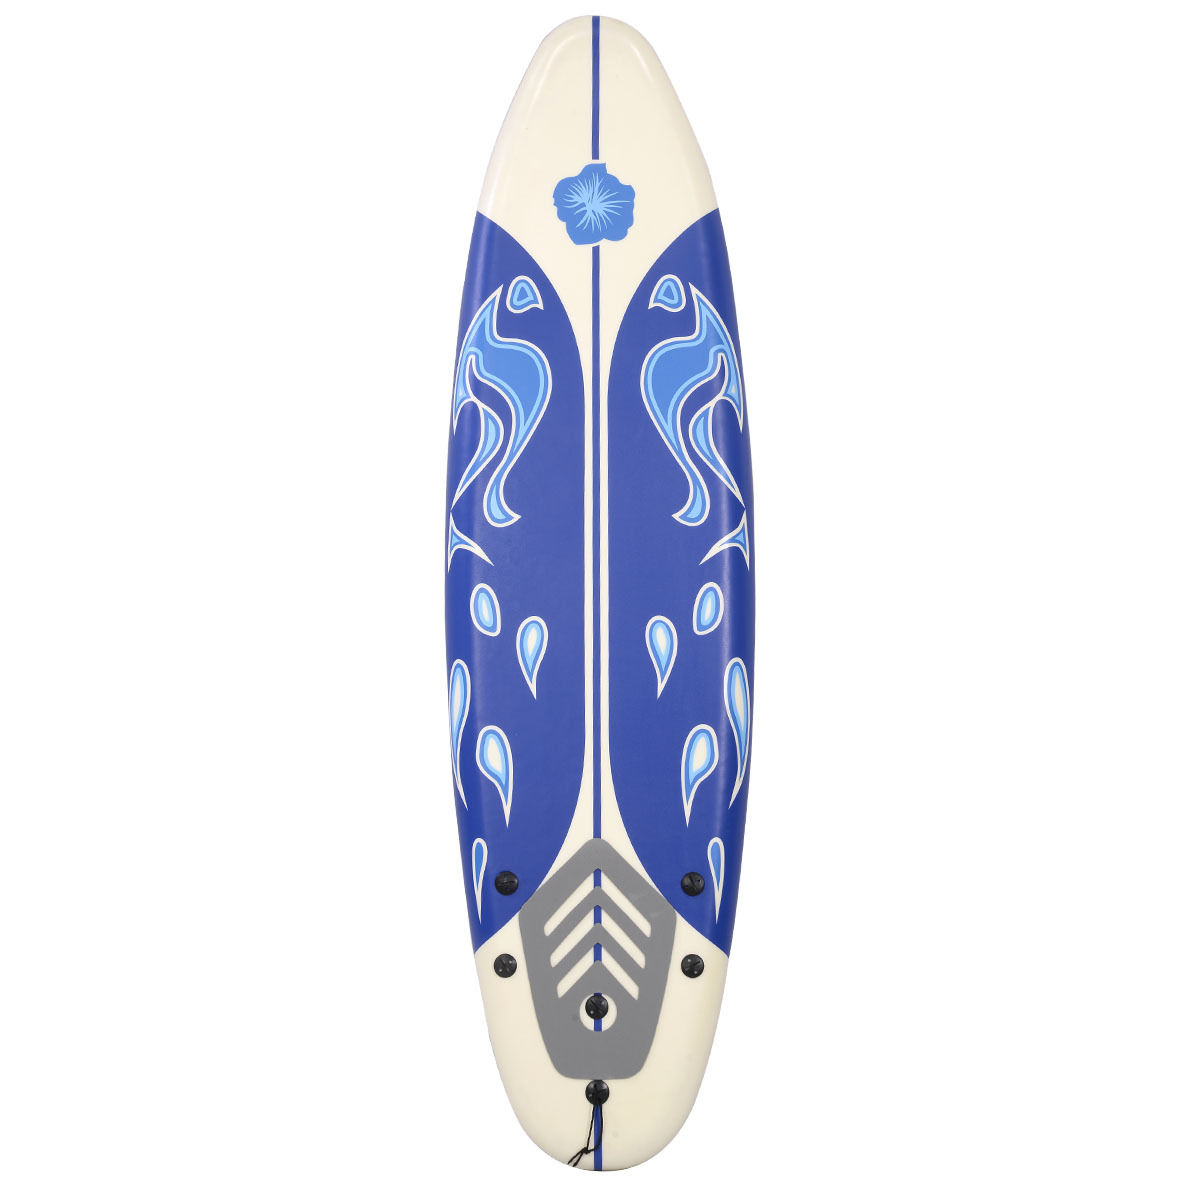 Costway 6' Surfboard Surf Foamie Boards Surfing Beach Ocean Body Boarding by Costway